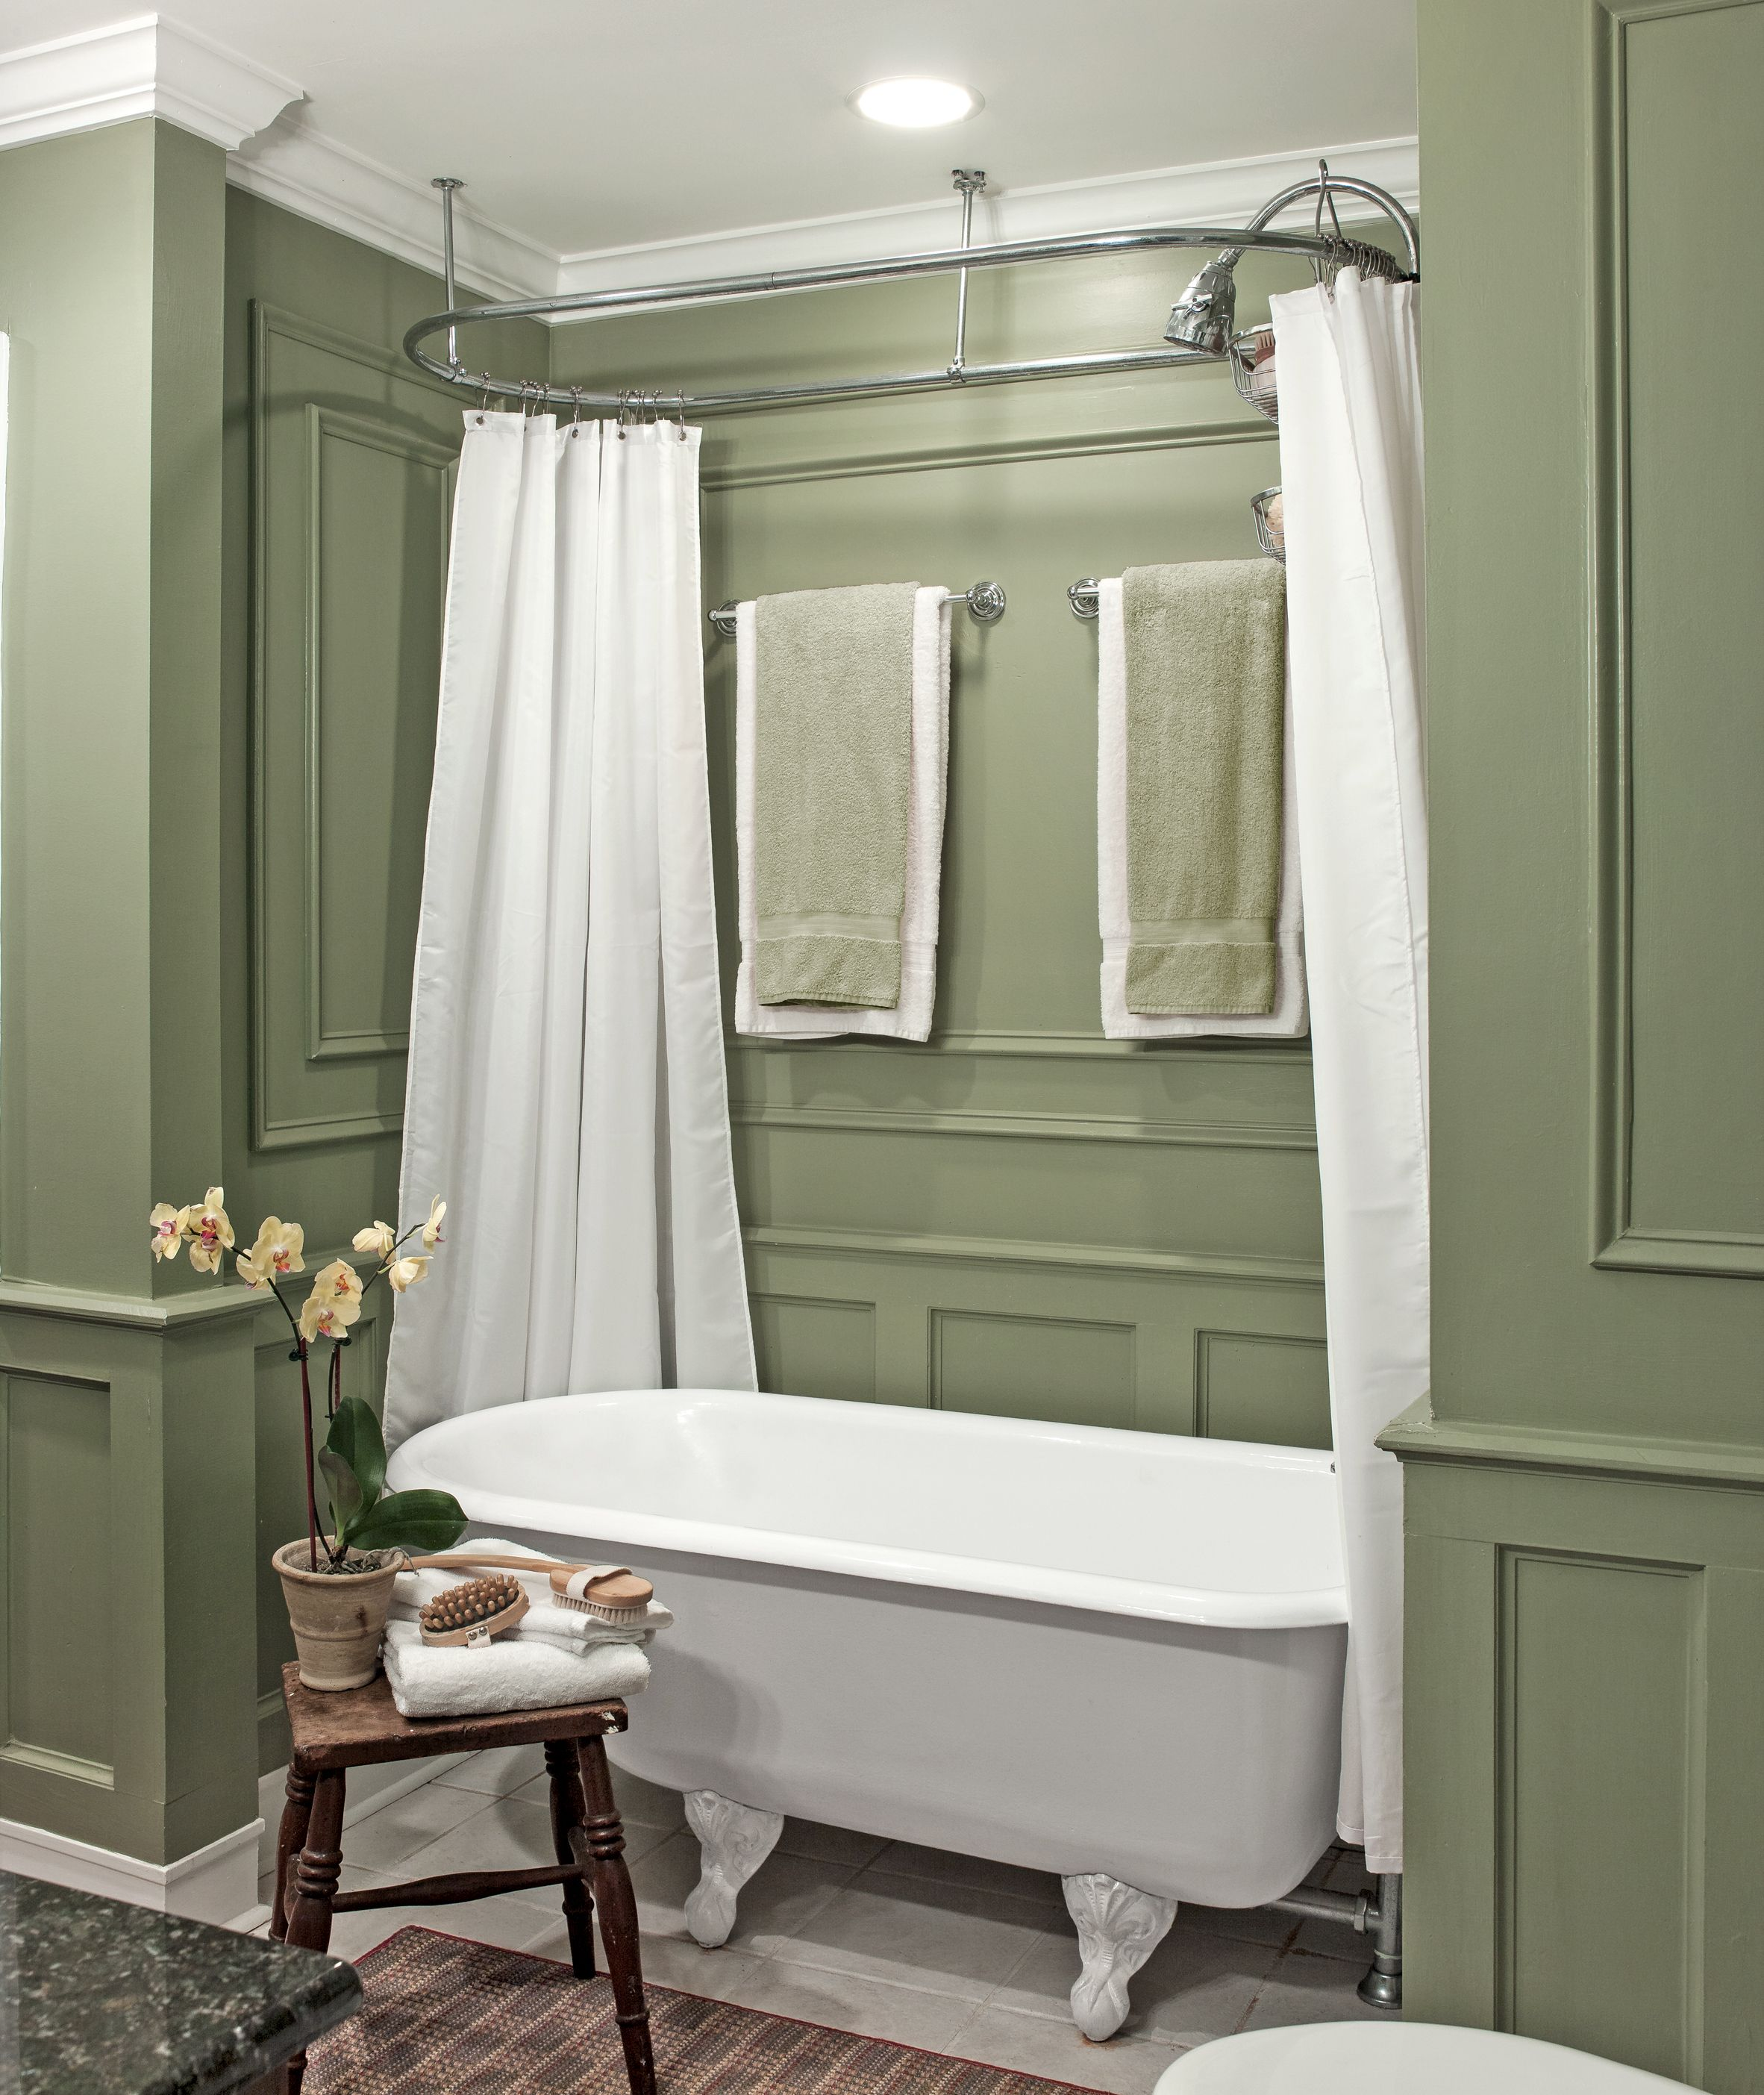 Bath under window ideas  a  house with a comeback story  bath bathtubs and laundry rooms